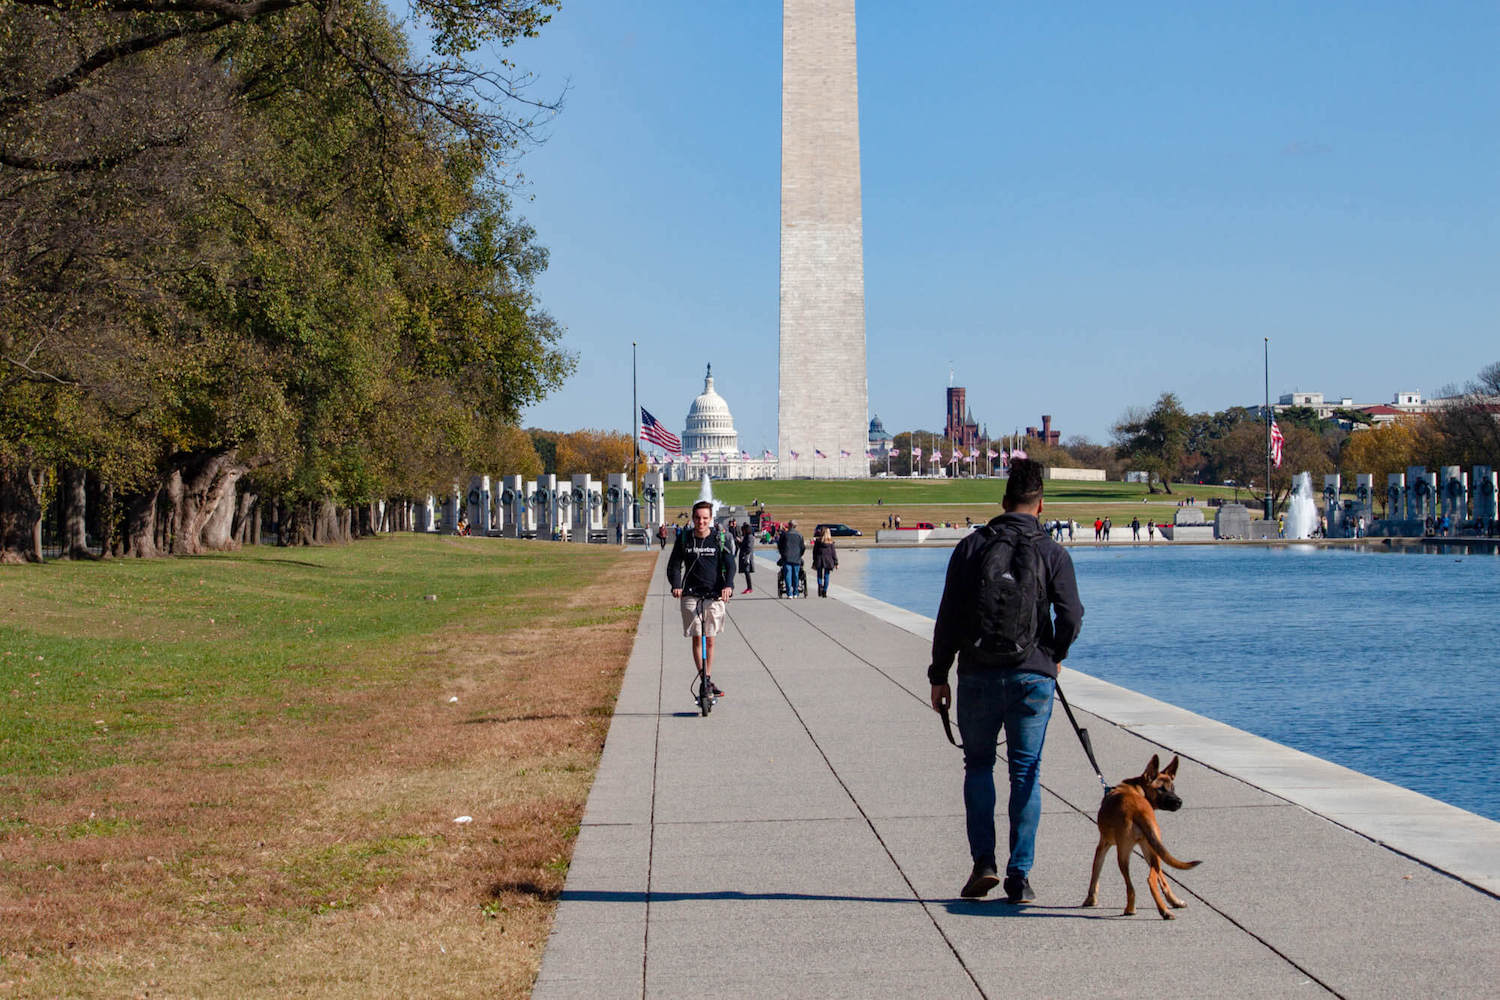 Pedestrians on the National Mall and Washington Monument